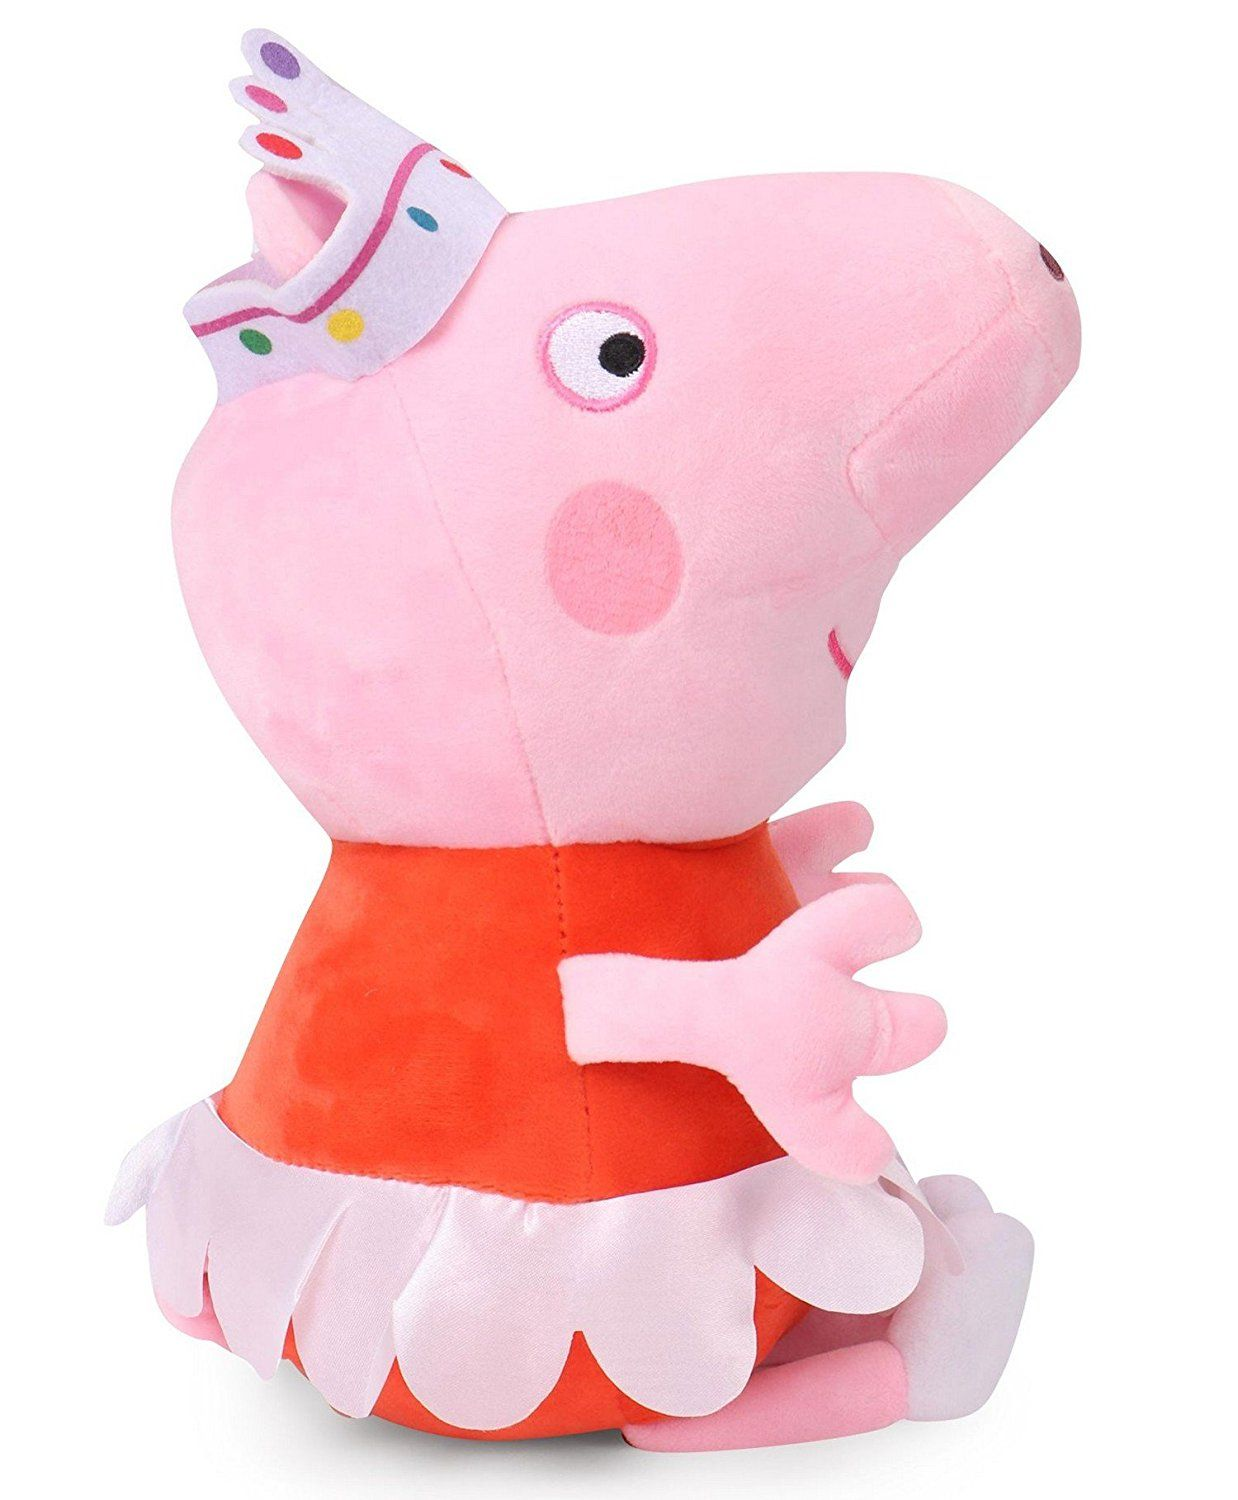 Buy Peppa Pig Plush With Crown Best Price In India Peppa Pig Plush Pig Plush Peppa Pig [ 1500 x 1238 Pixel ]